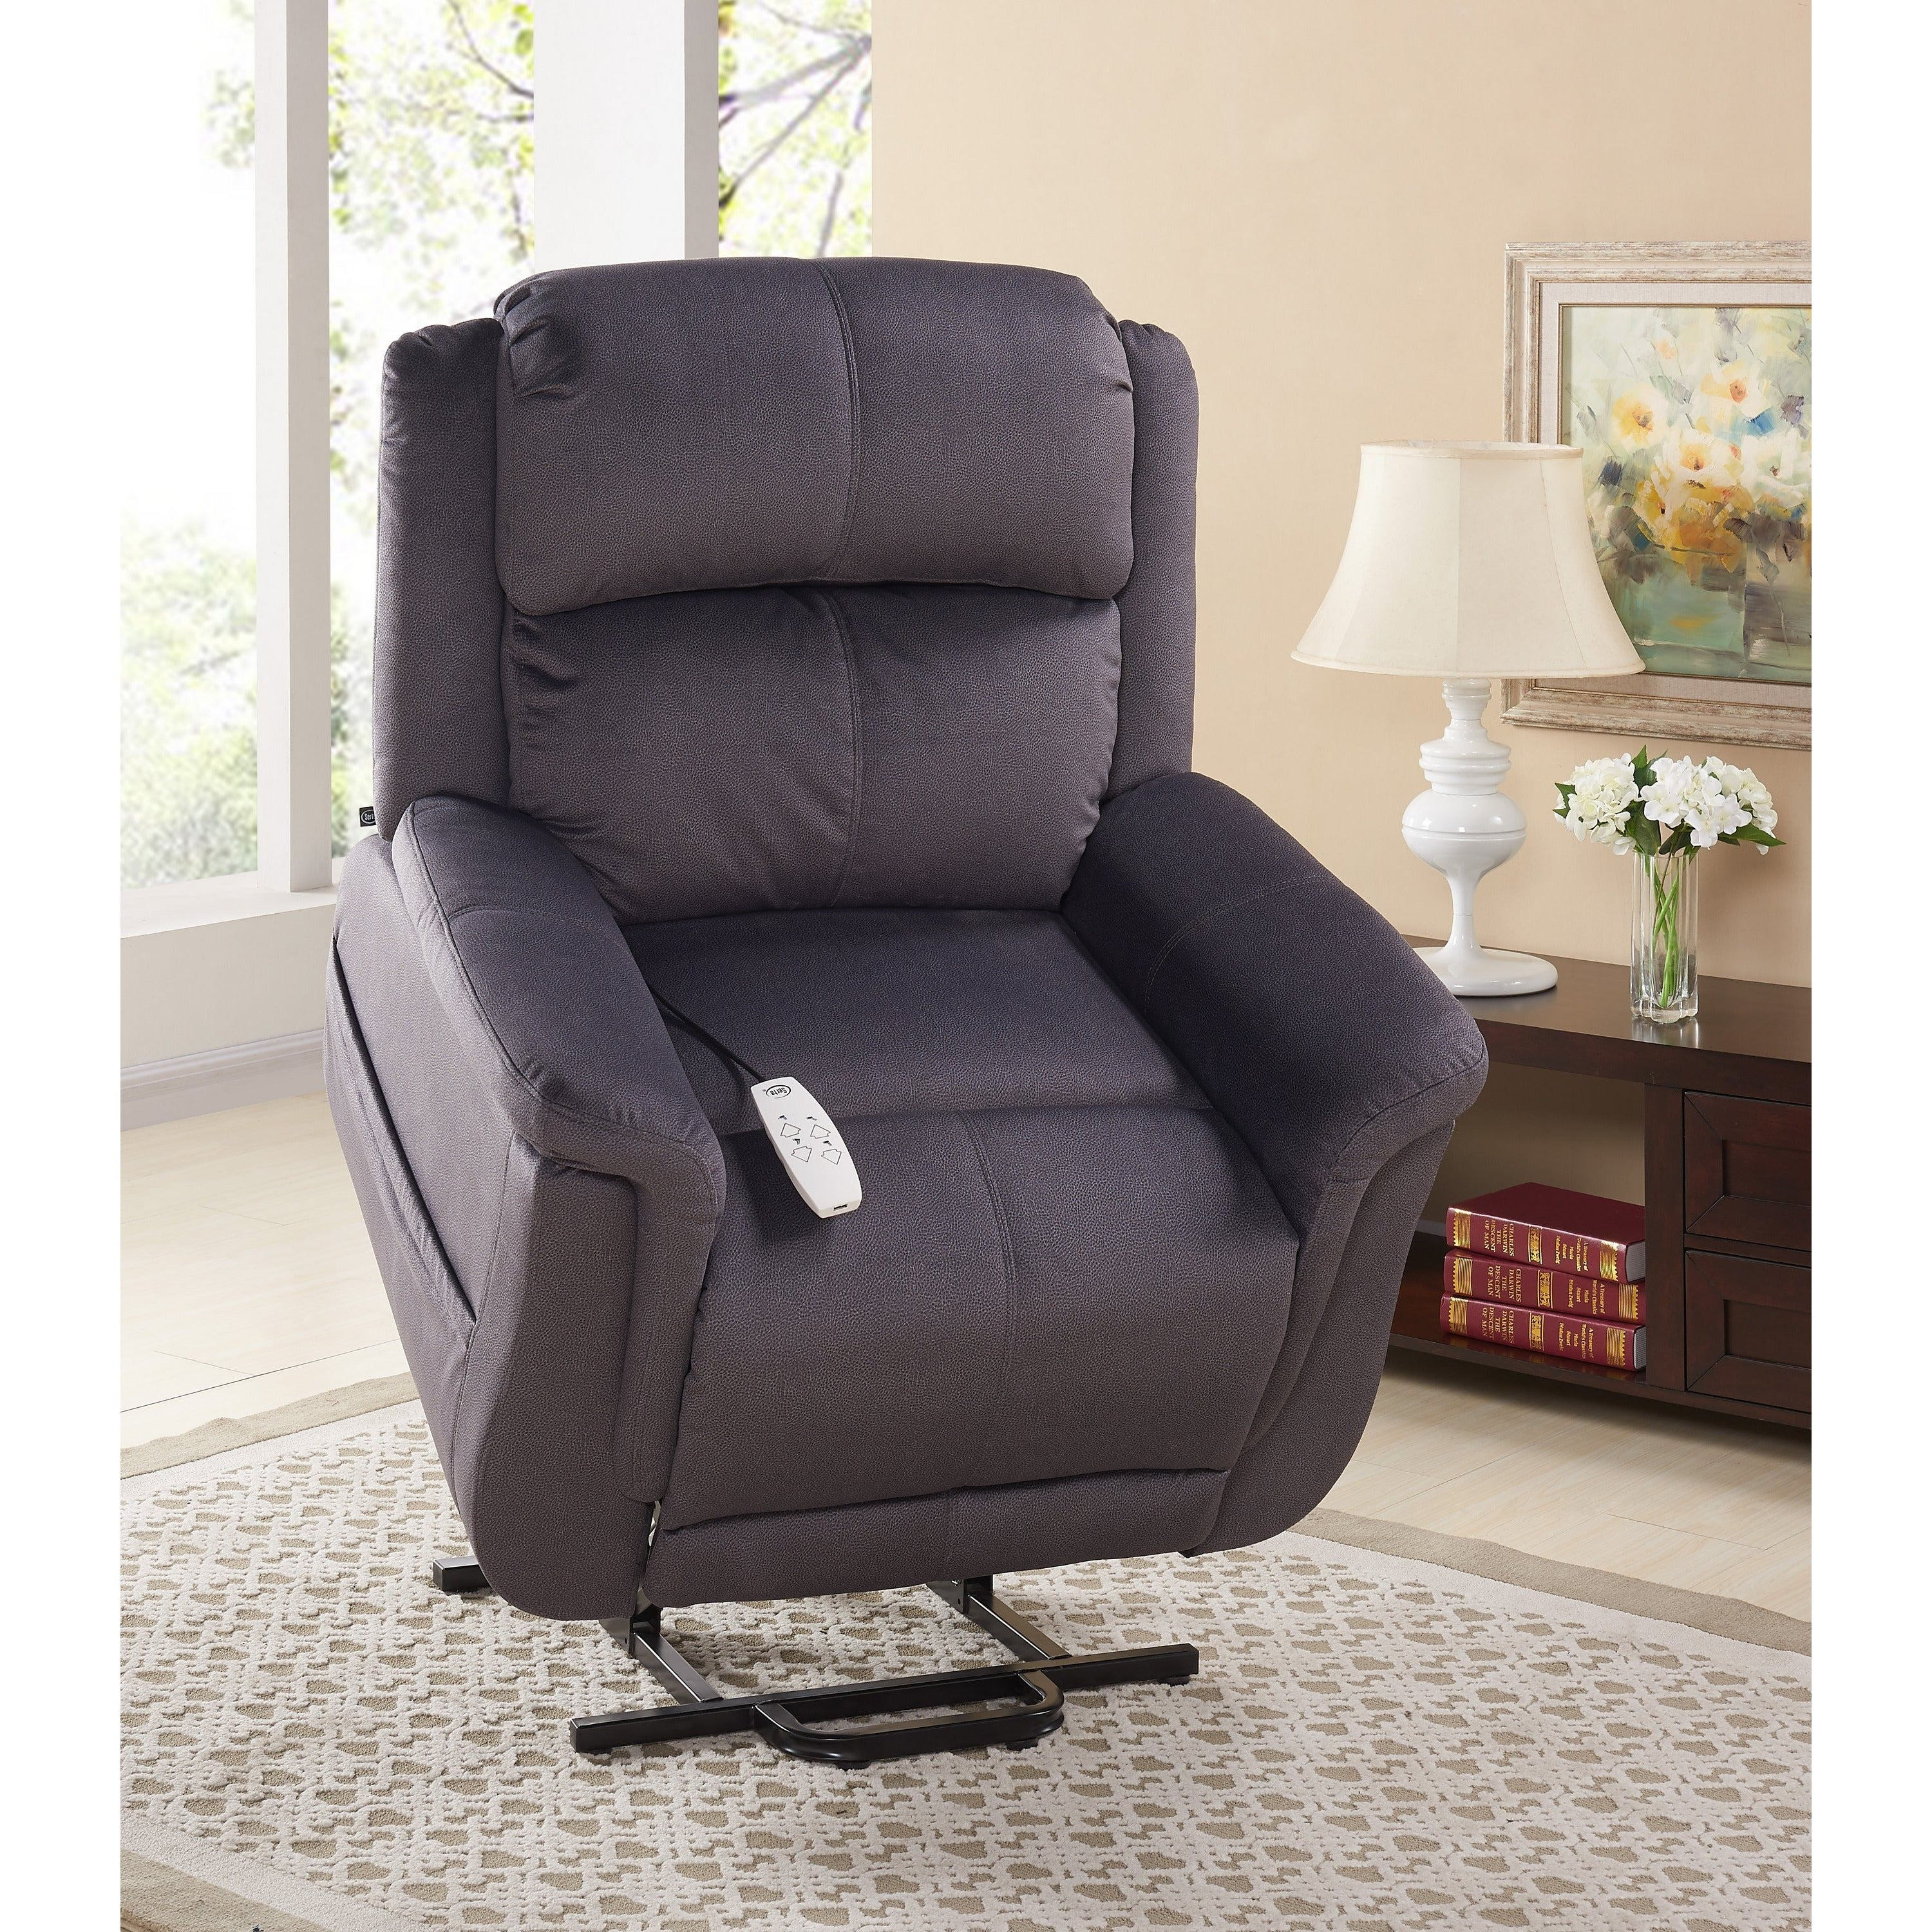 recliner home comfort chair reclining today free overstock sheffield shipping garden product serta lift